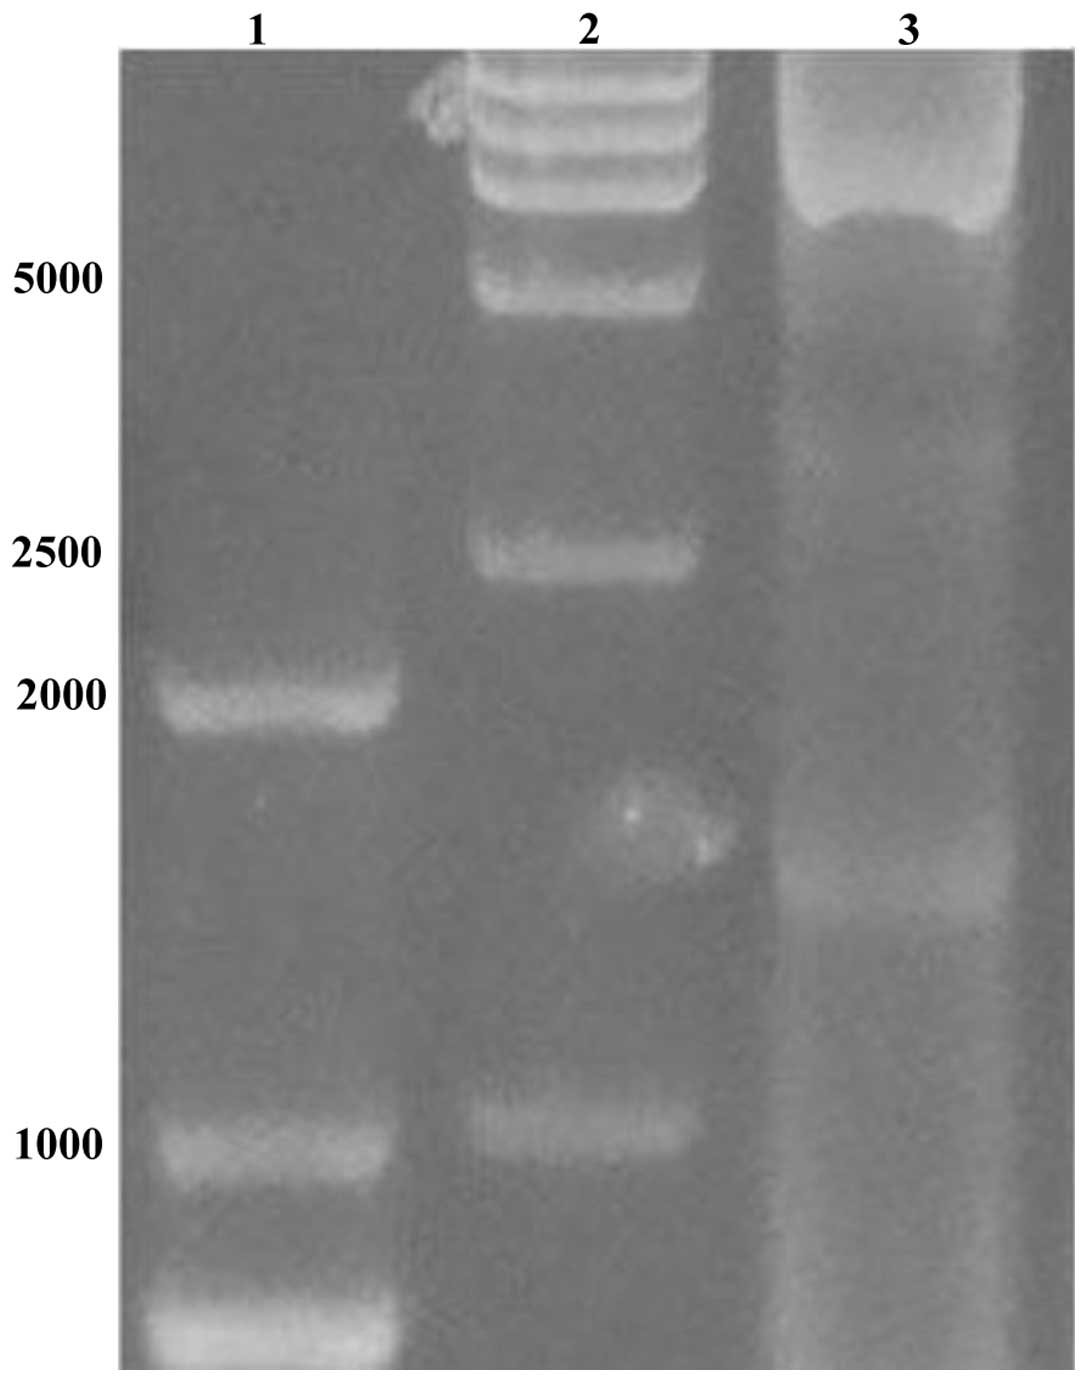 Production of DUSP1 protein using the baculovirus insect